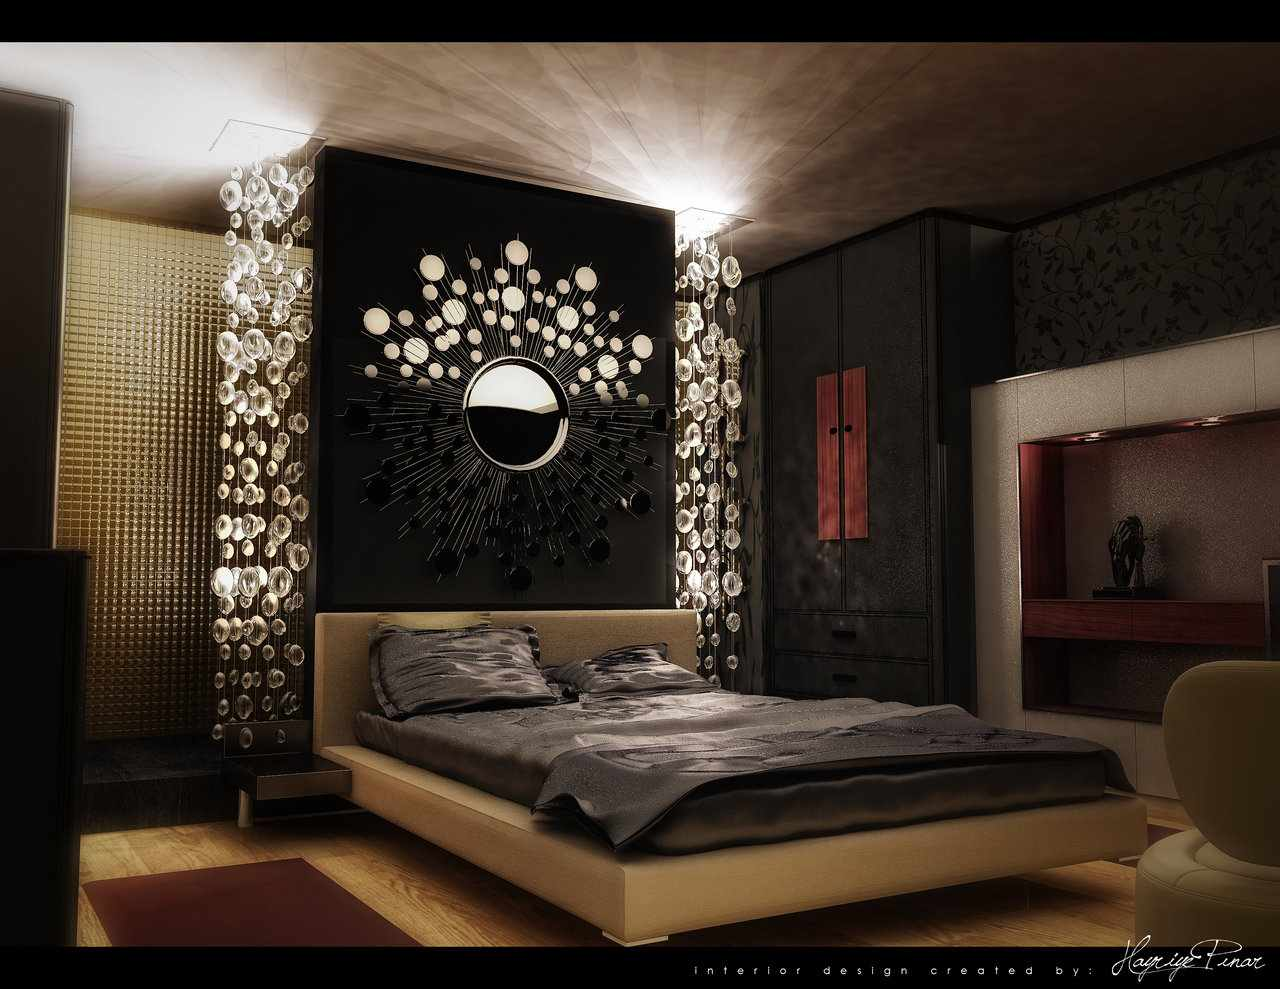 ikea bedroom ideas ikea bedroom 2014 ideas room design On bedroom photos design ideas